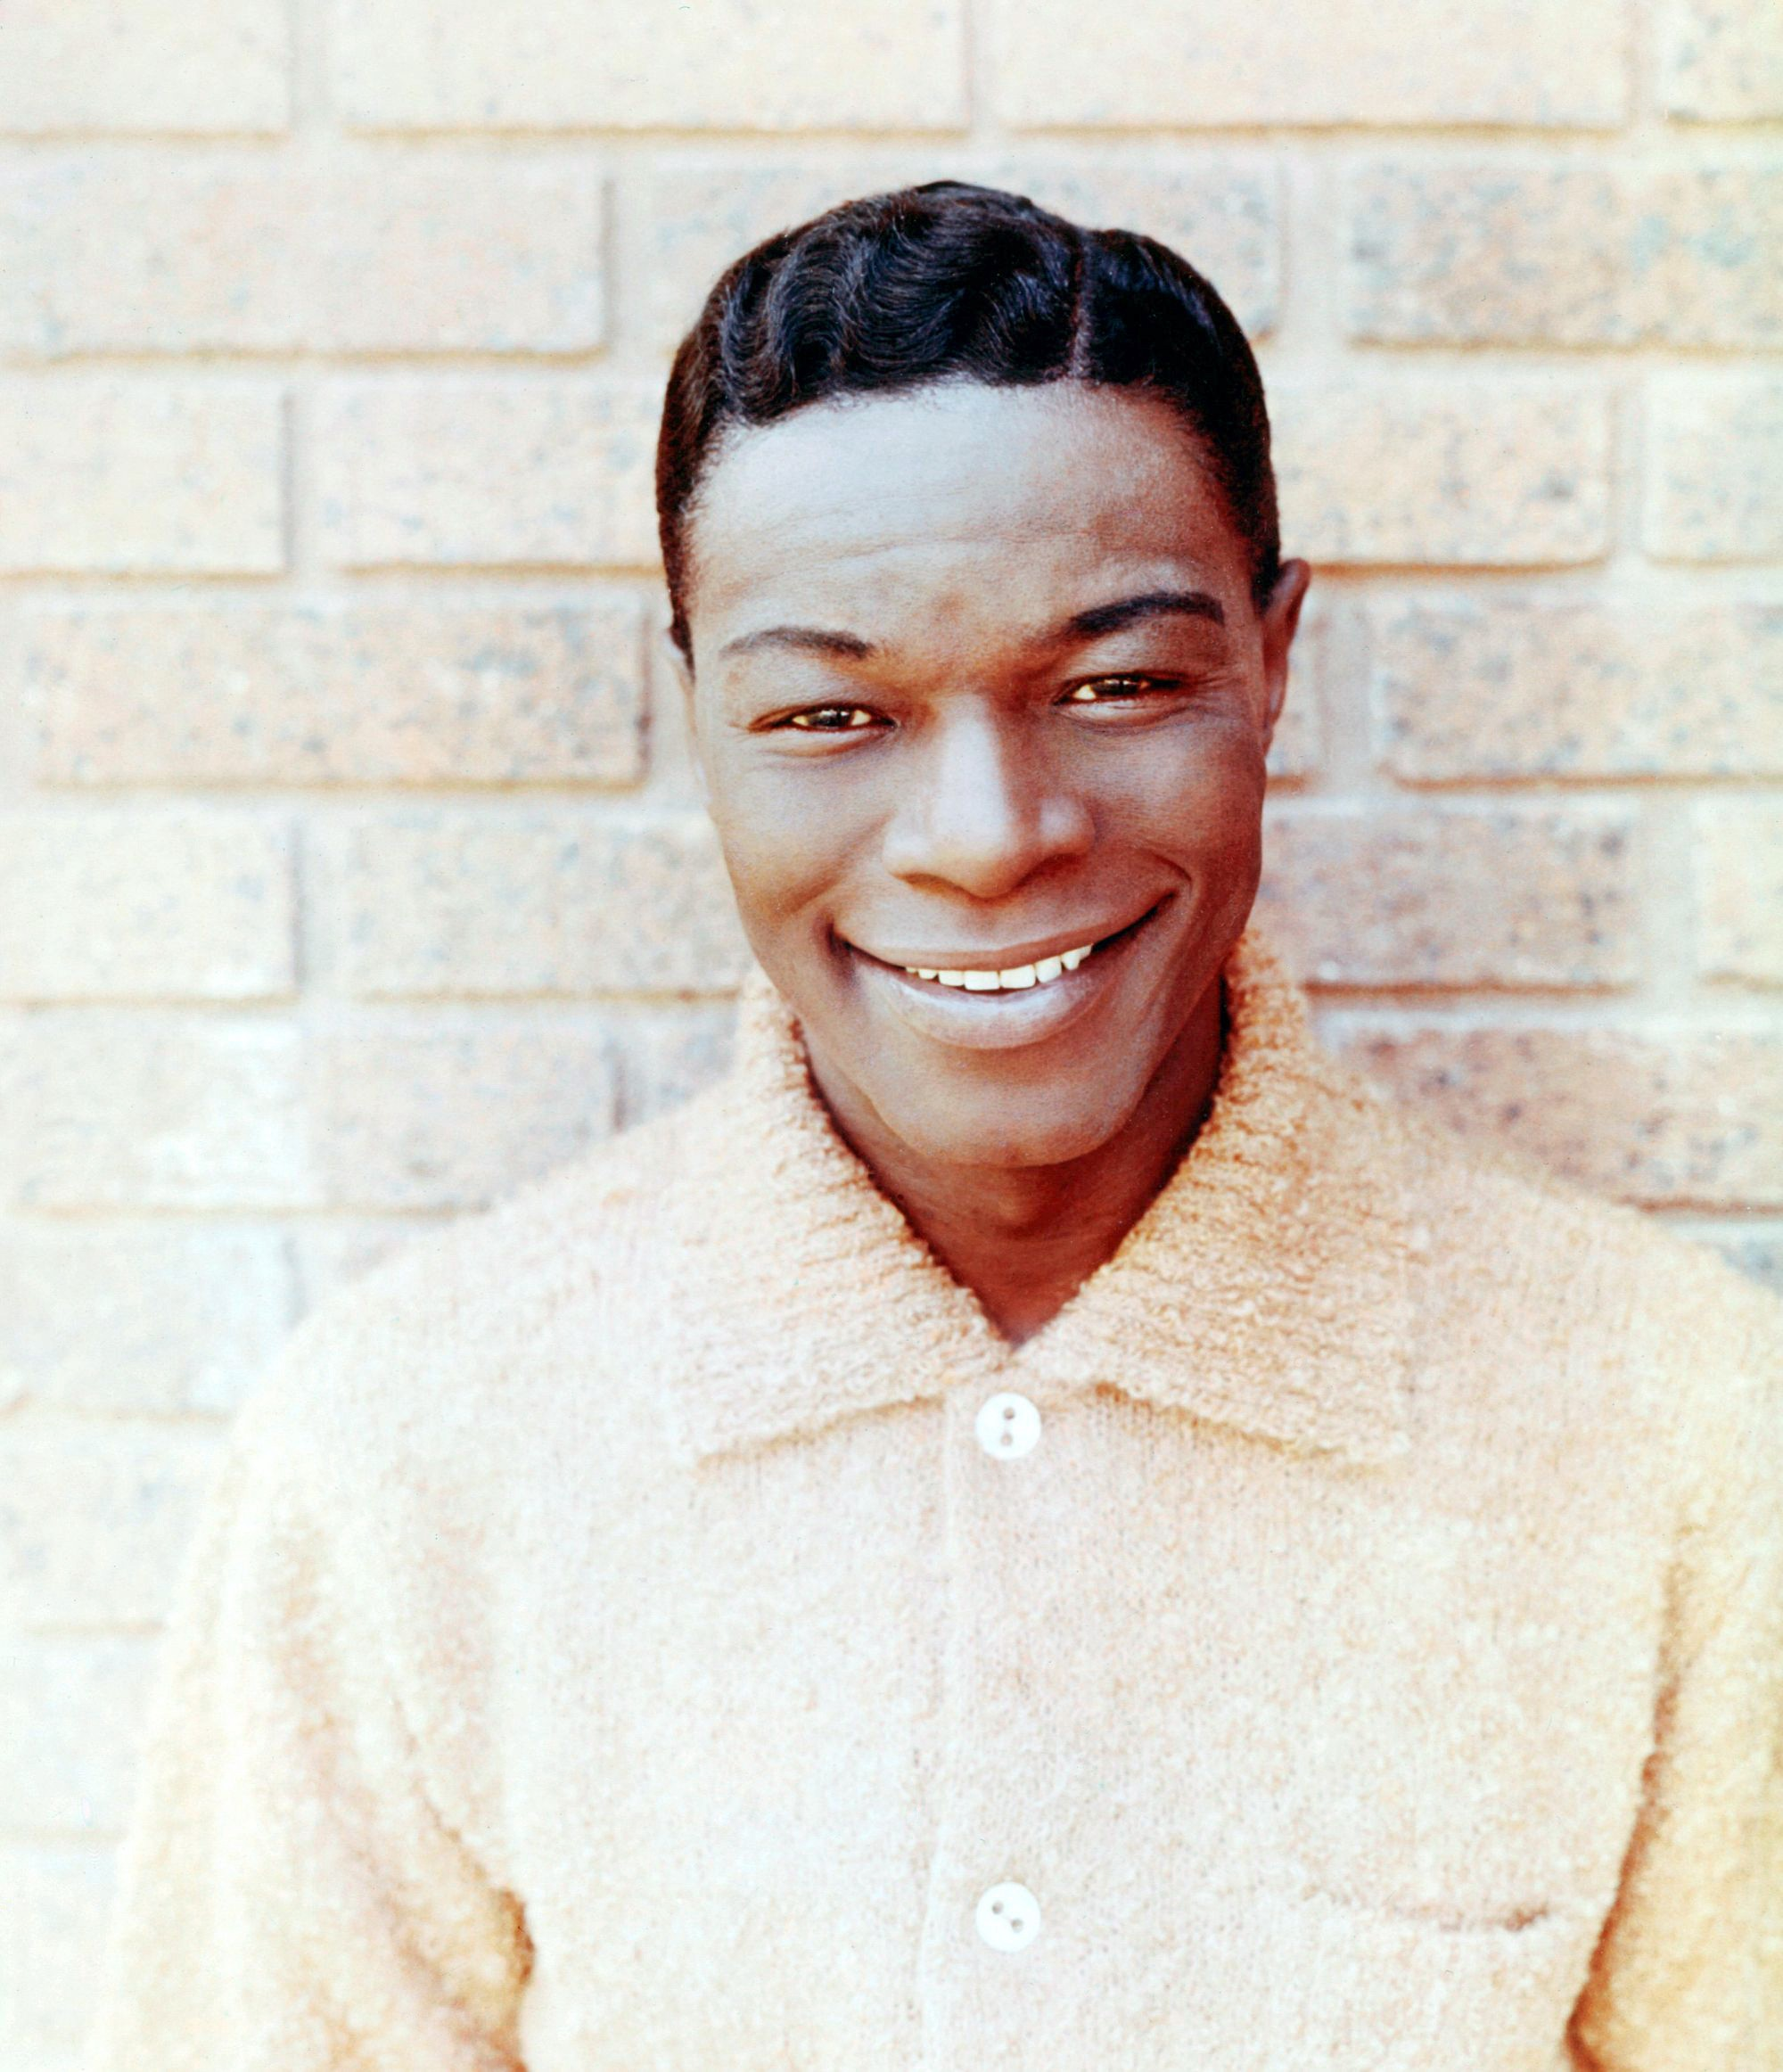 Nat King Cole Christmas.Emili Recommends The Christmas Song By Nat King Cole